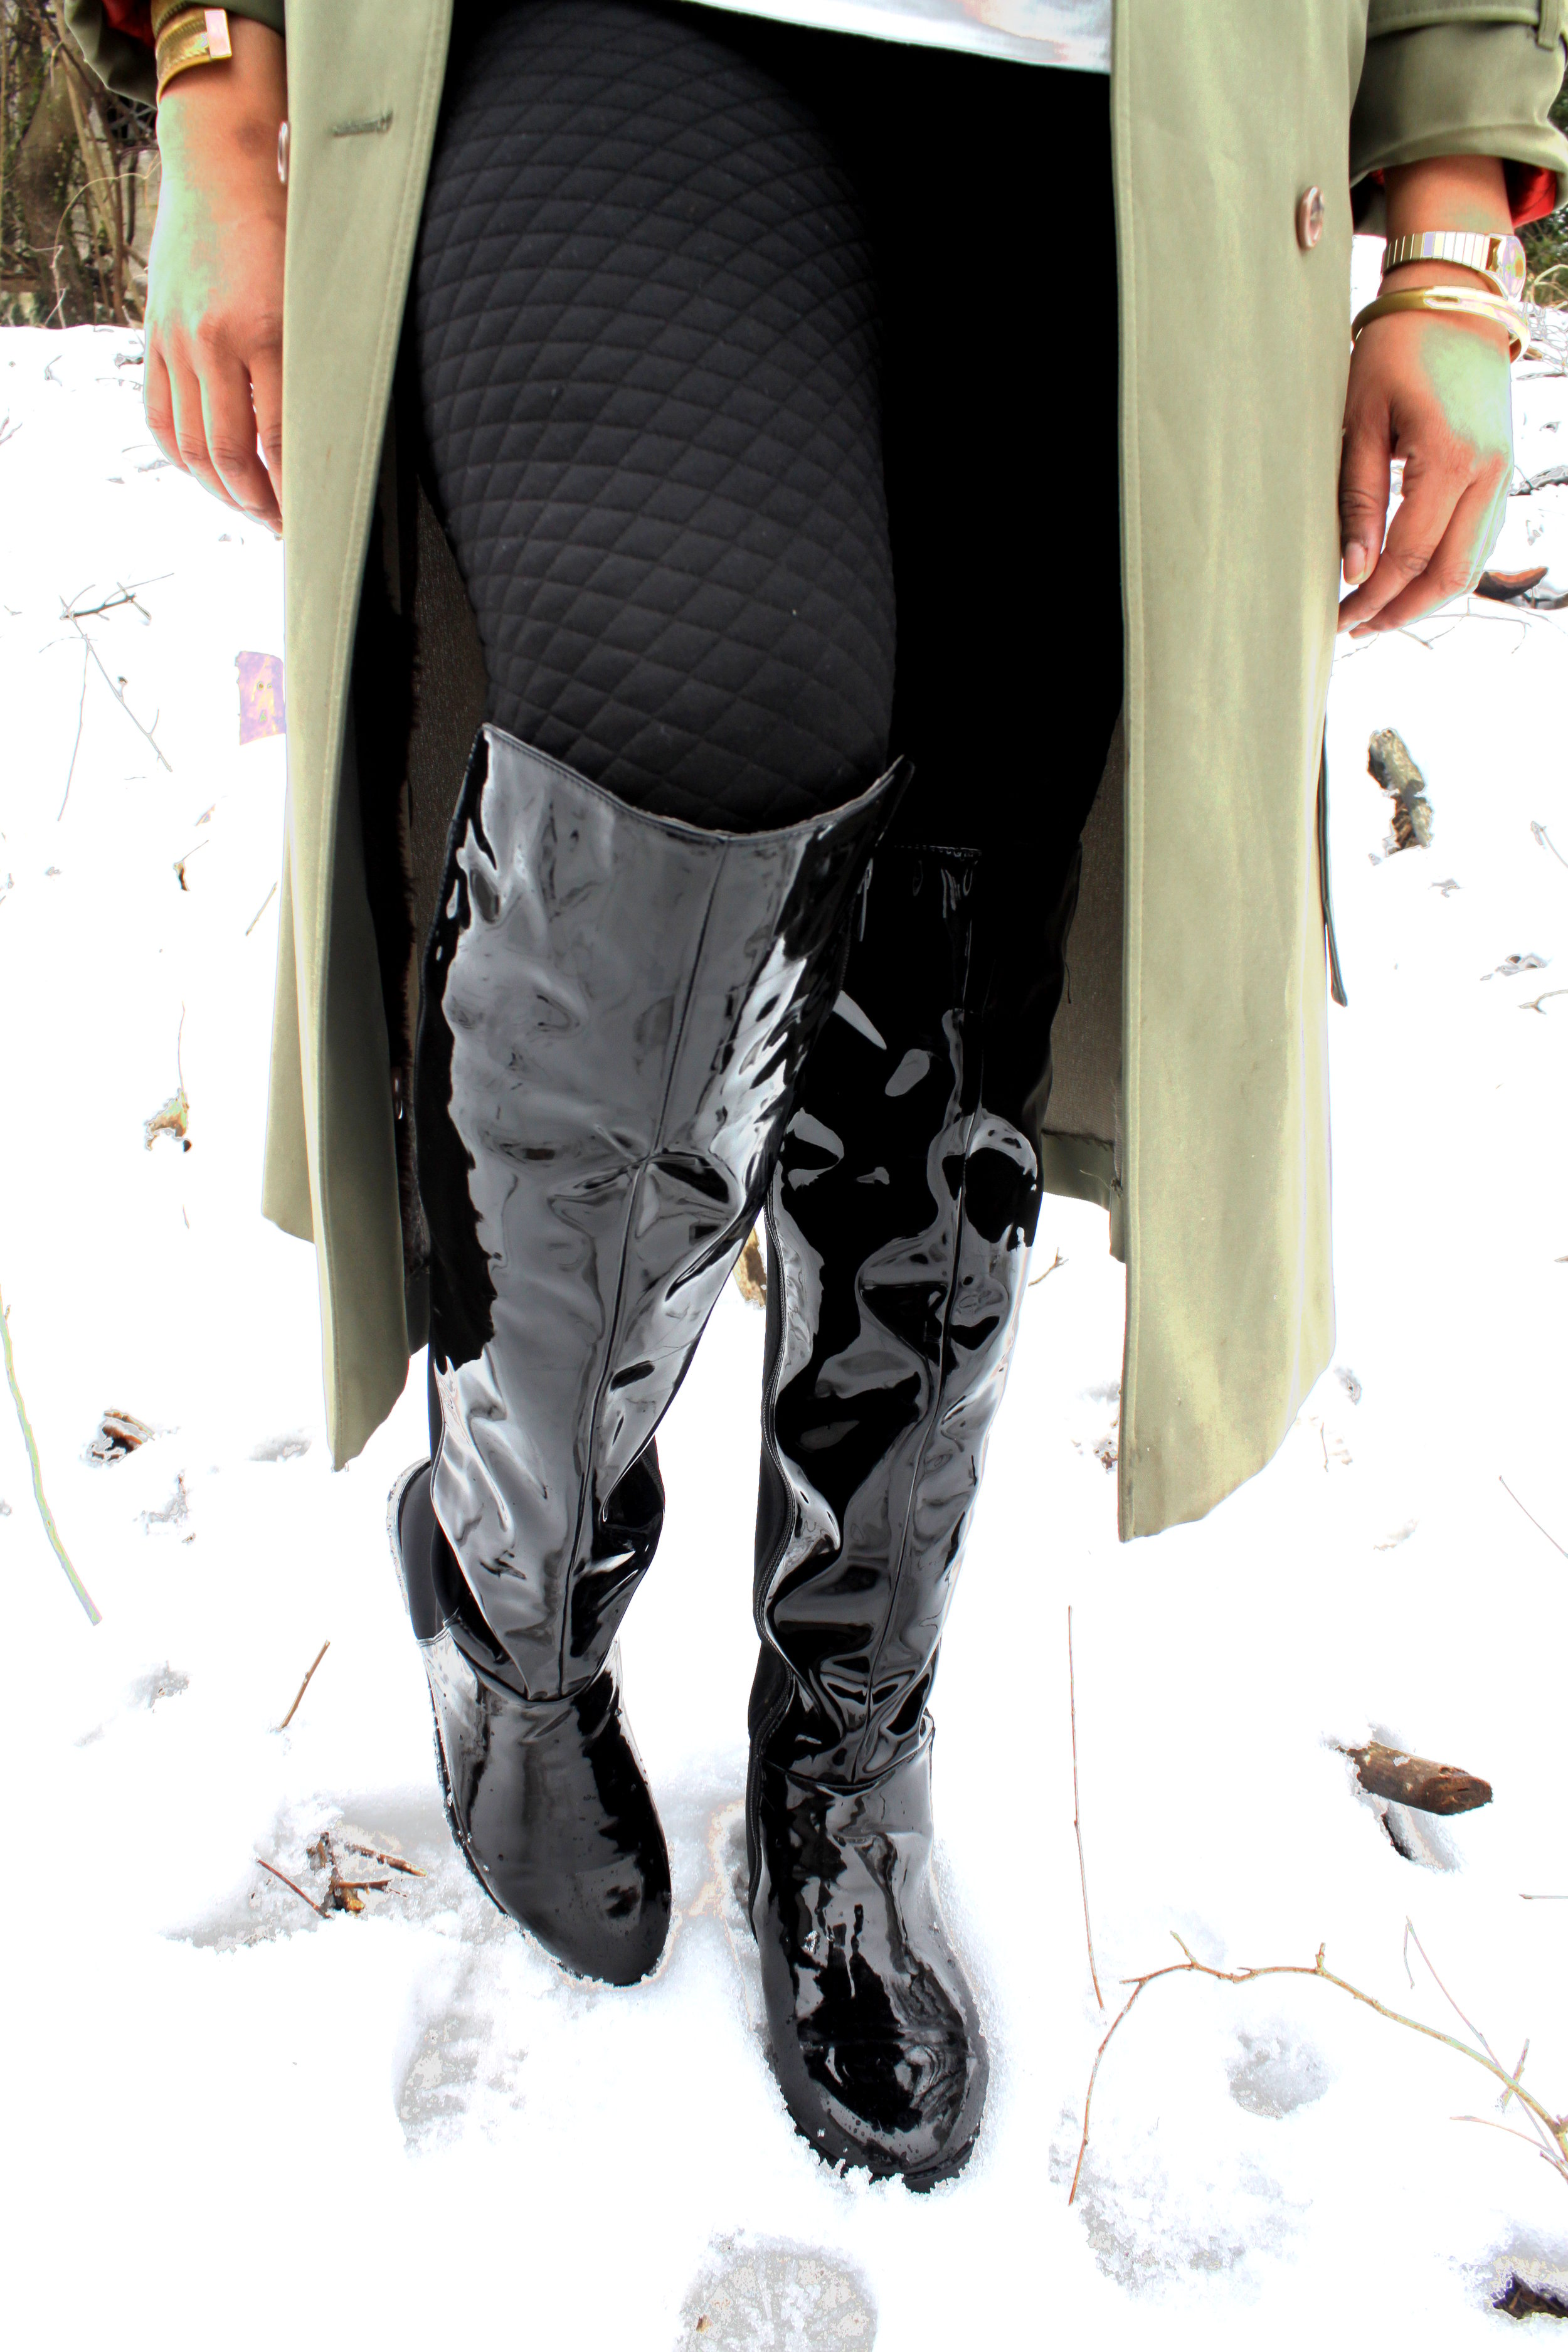 quilted pants - over the knew patent leather boots perfect for snow plu size fashion